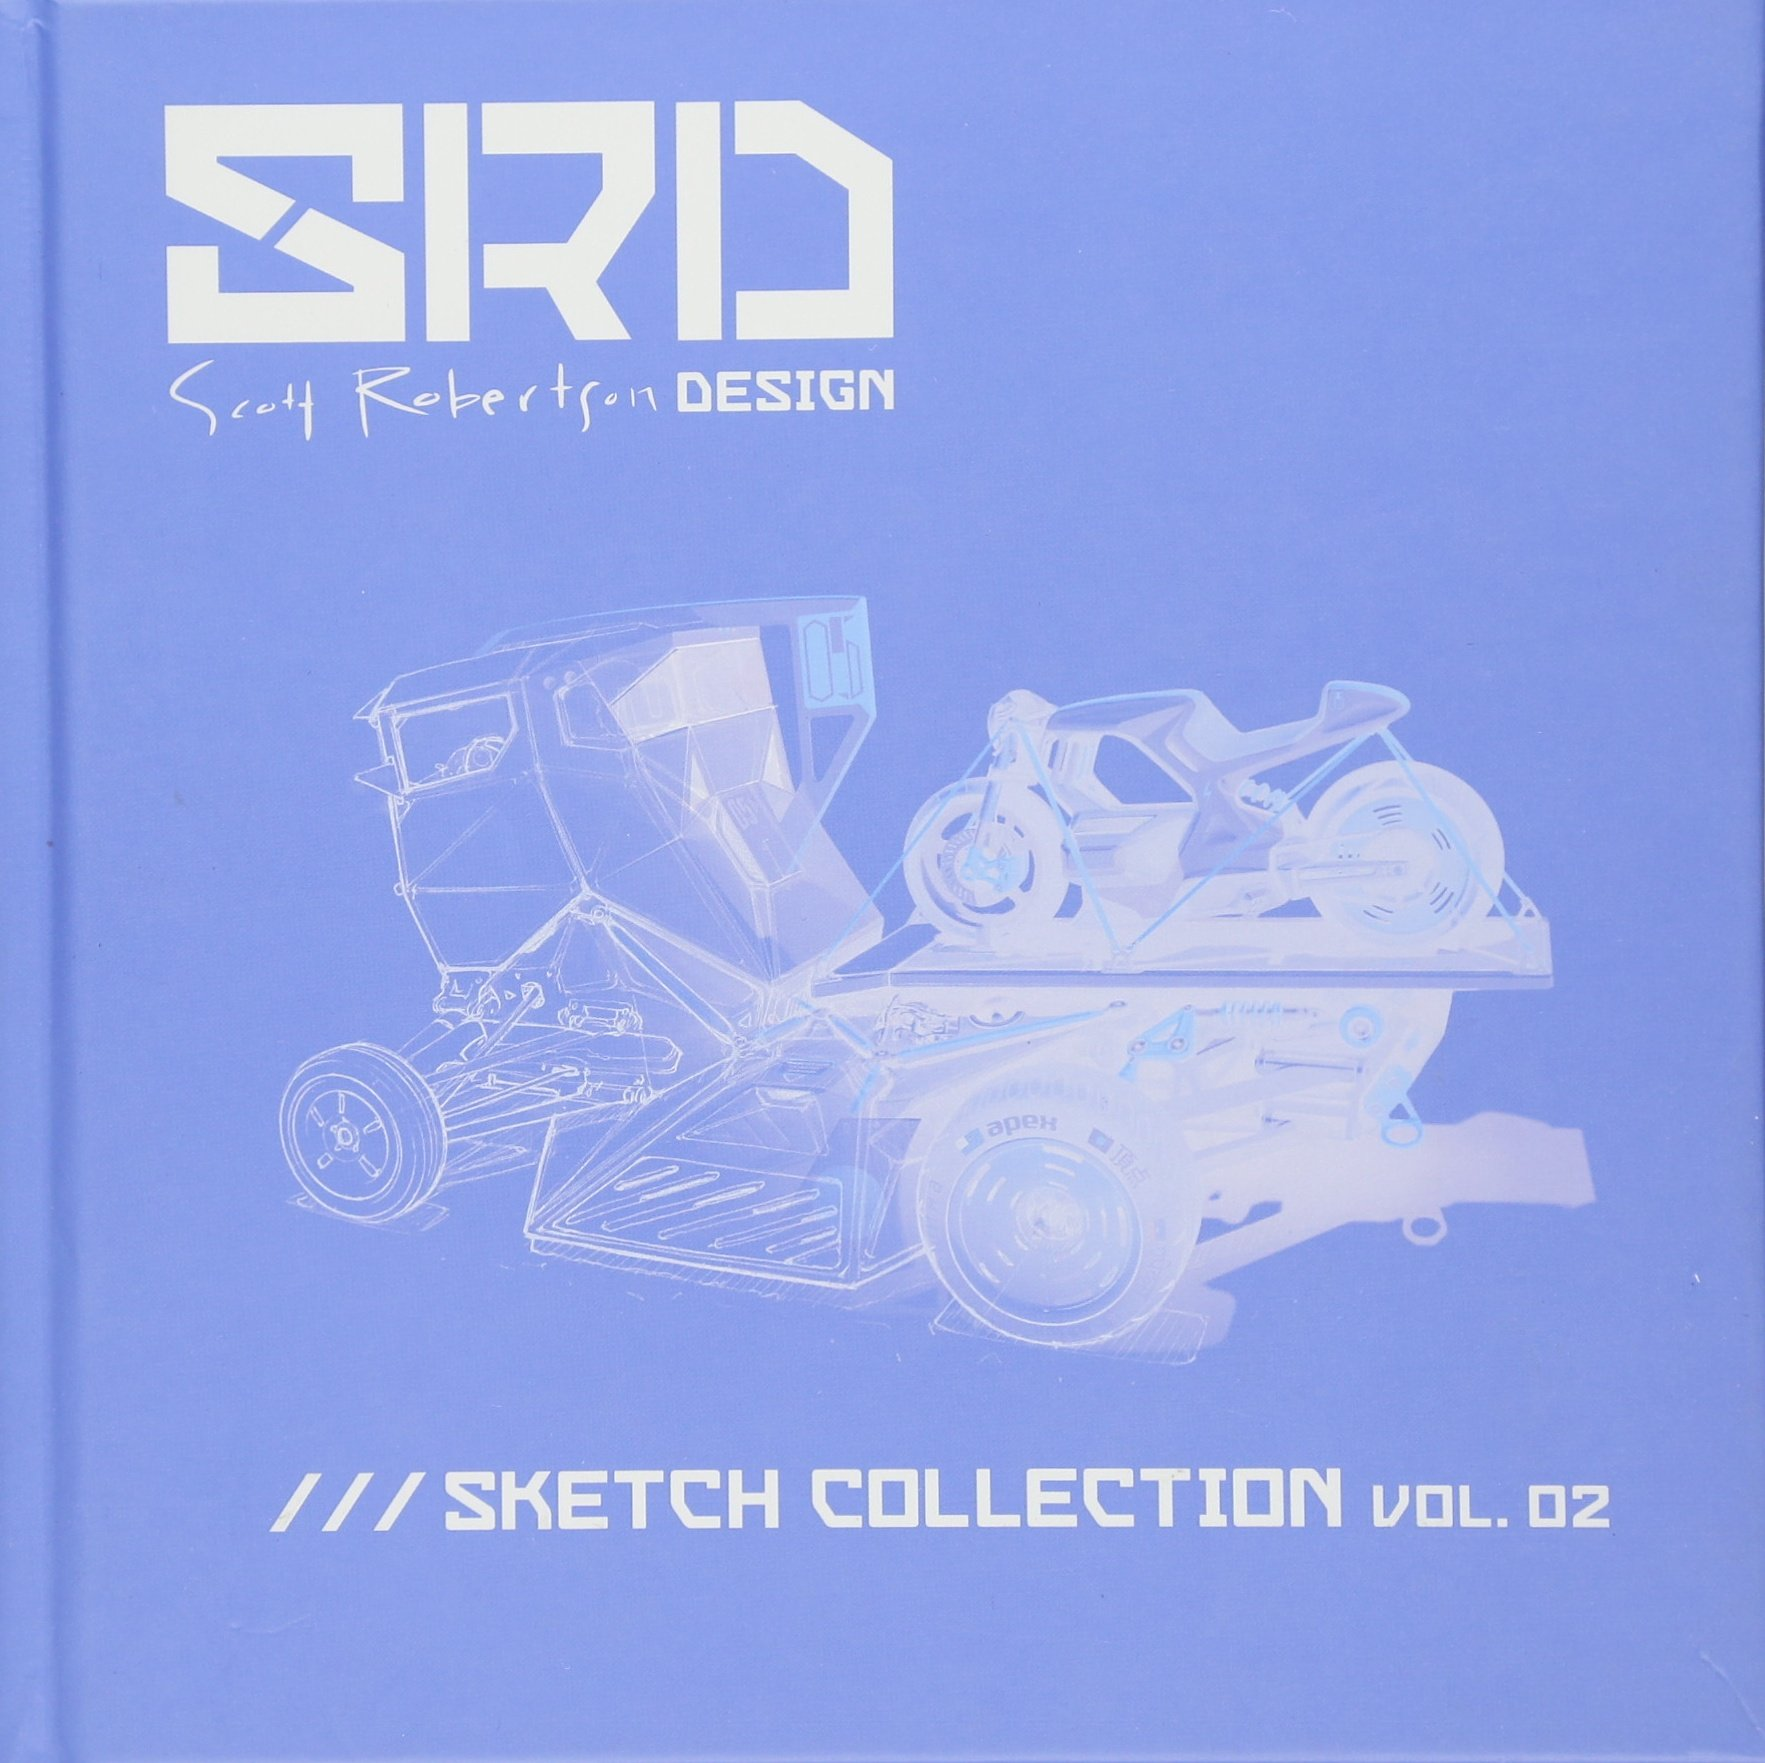 SRD Sketch Collection Vol. 02